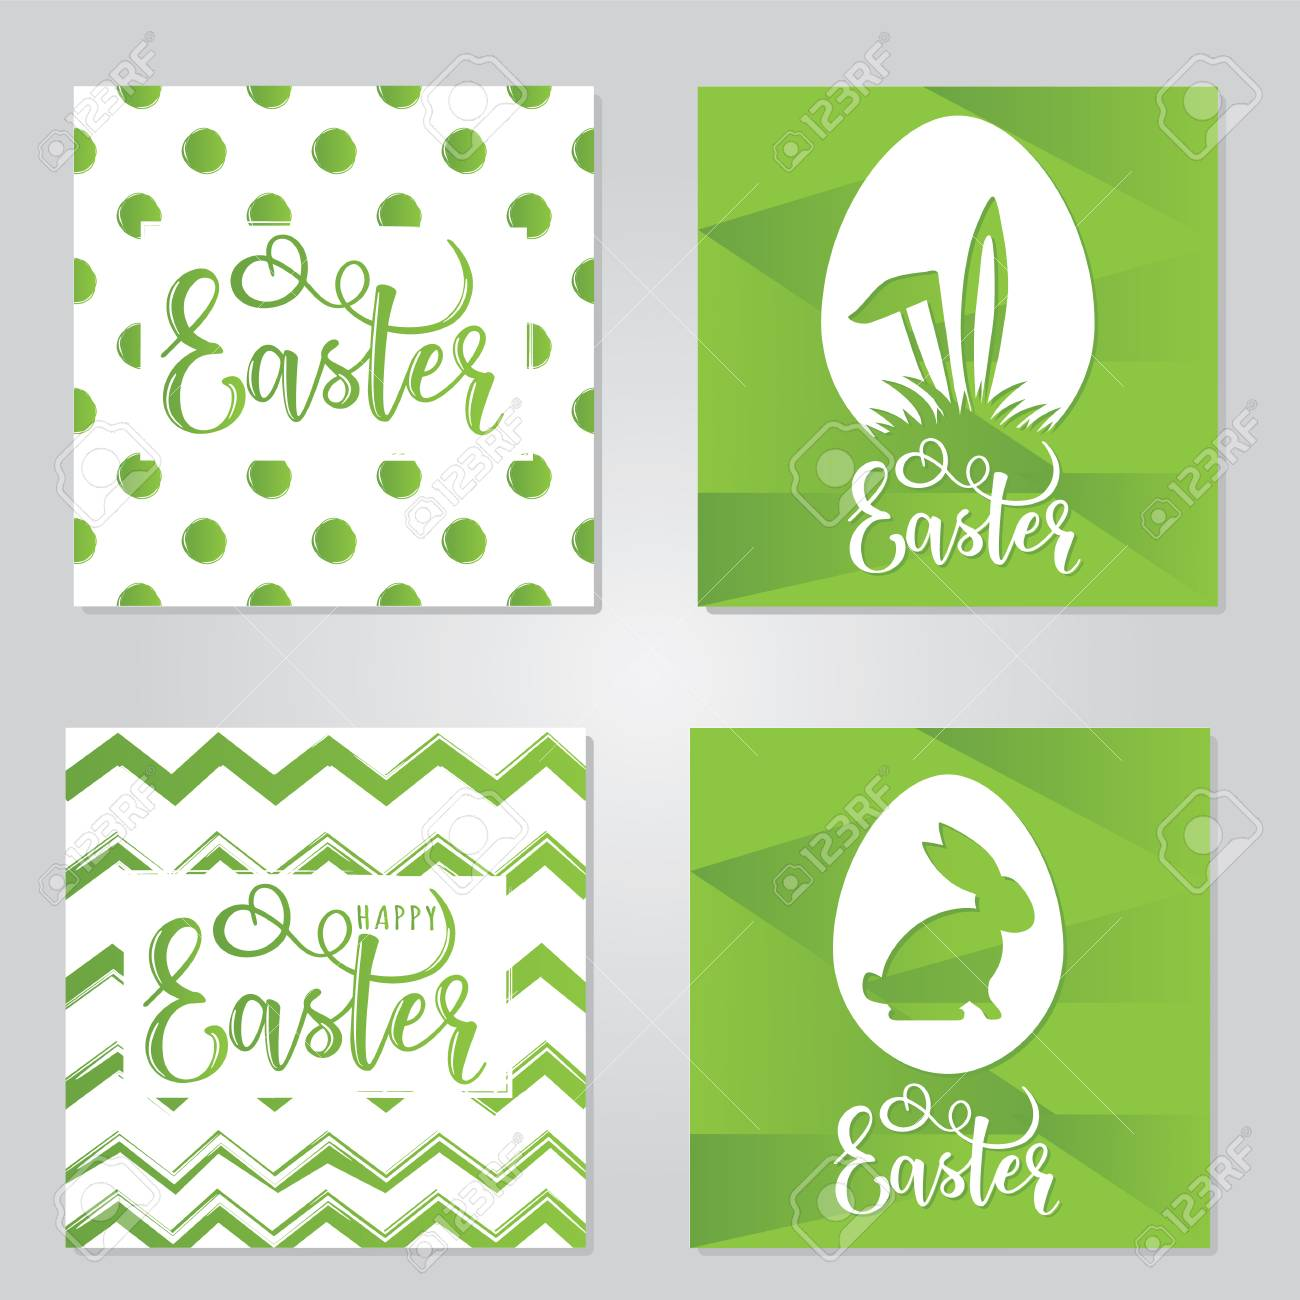 vector set for easter event greetings postcard card invitation